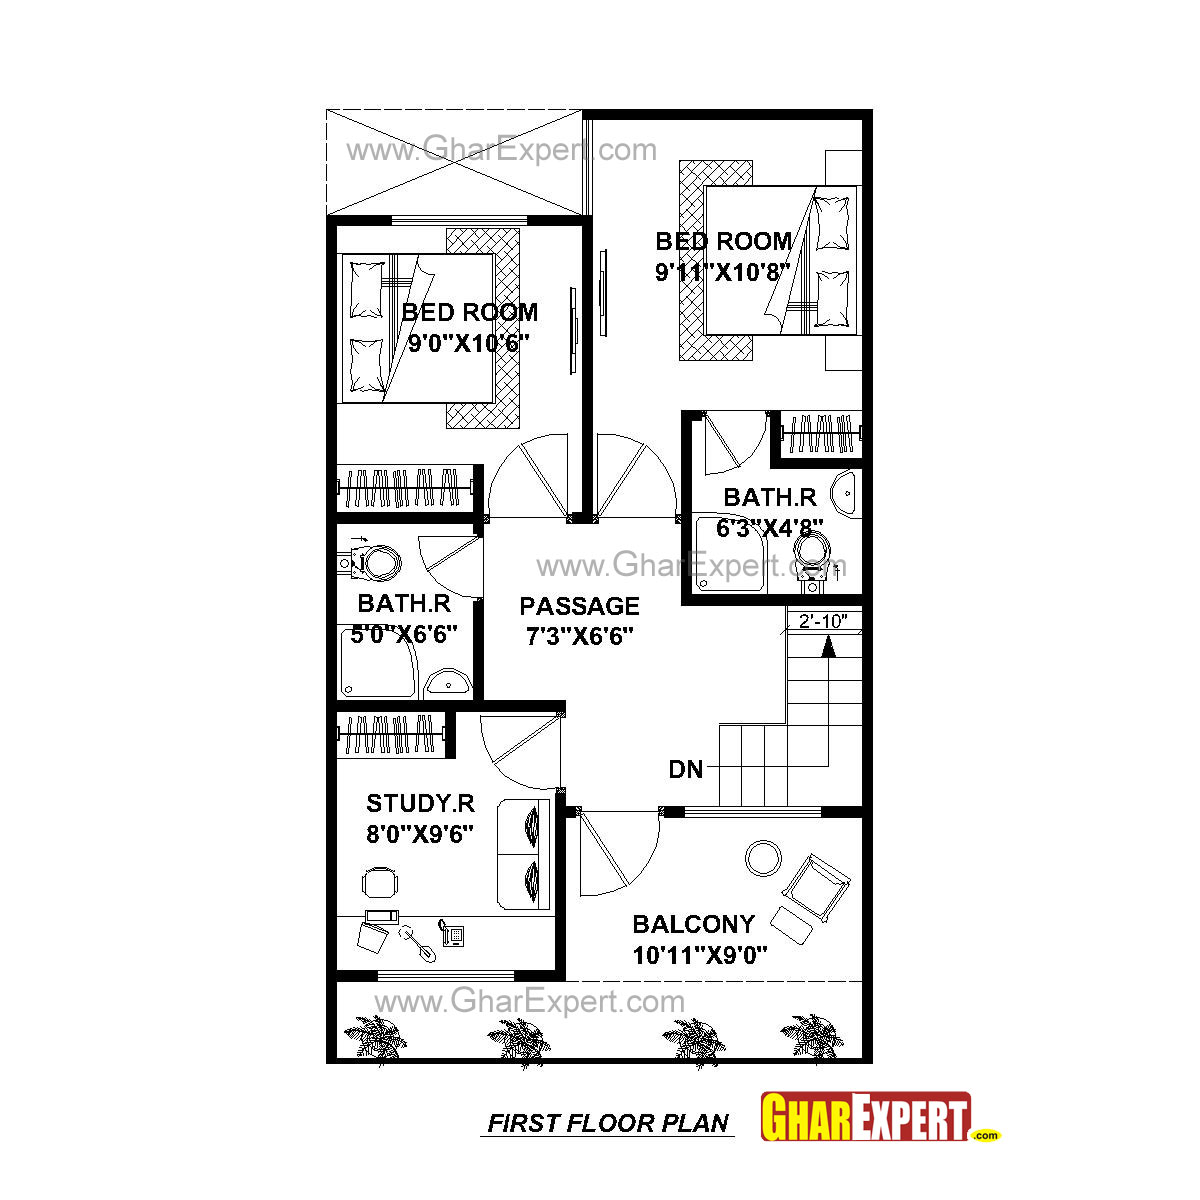 house plans com house plan for 20 by 45 plot plot size 100 11400